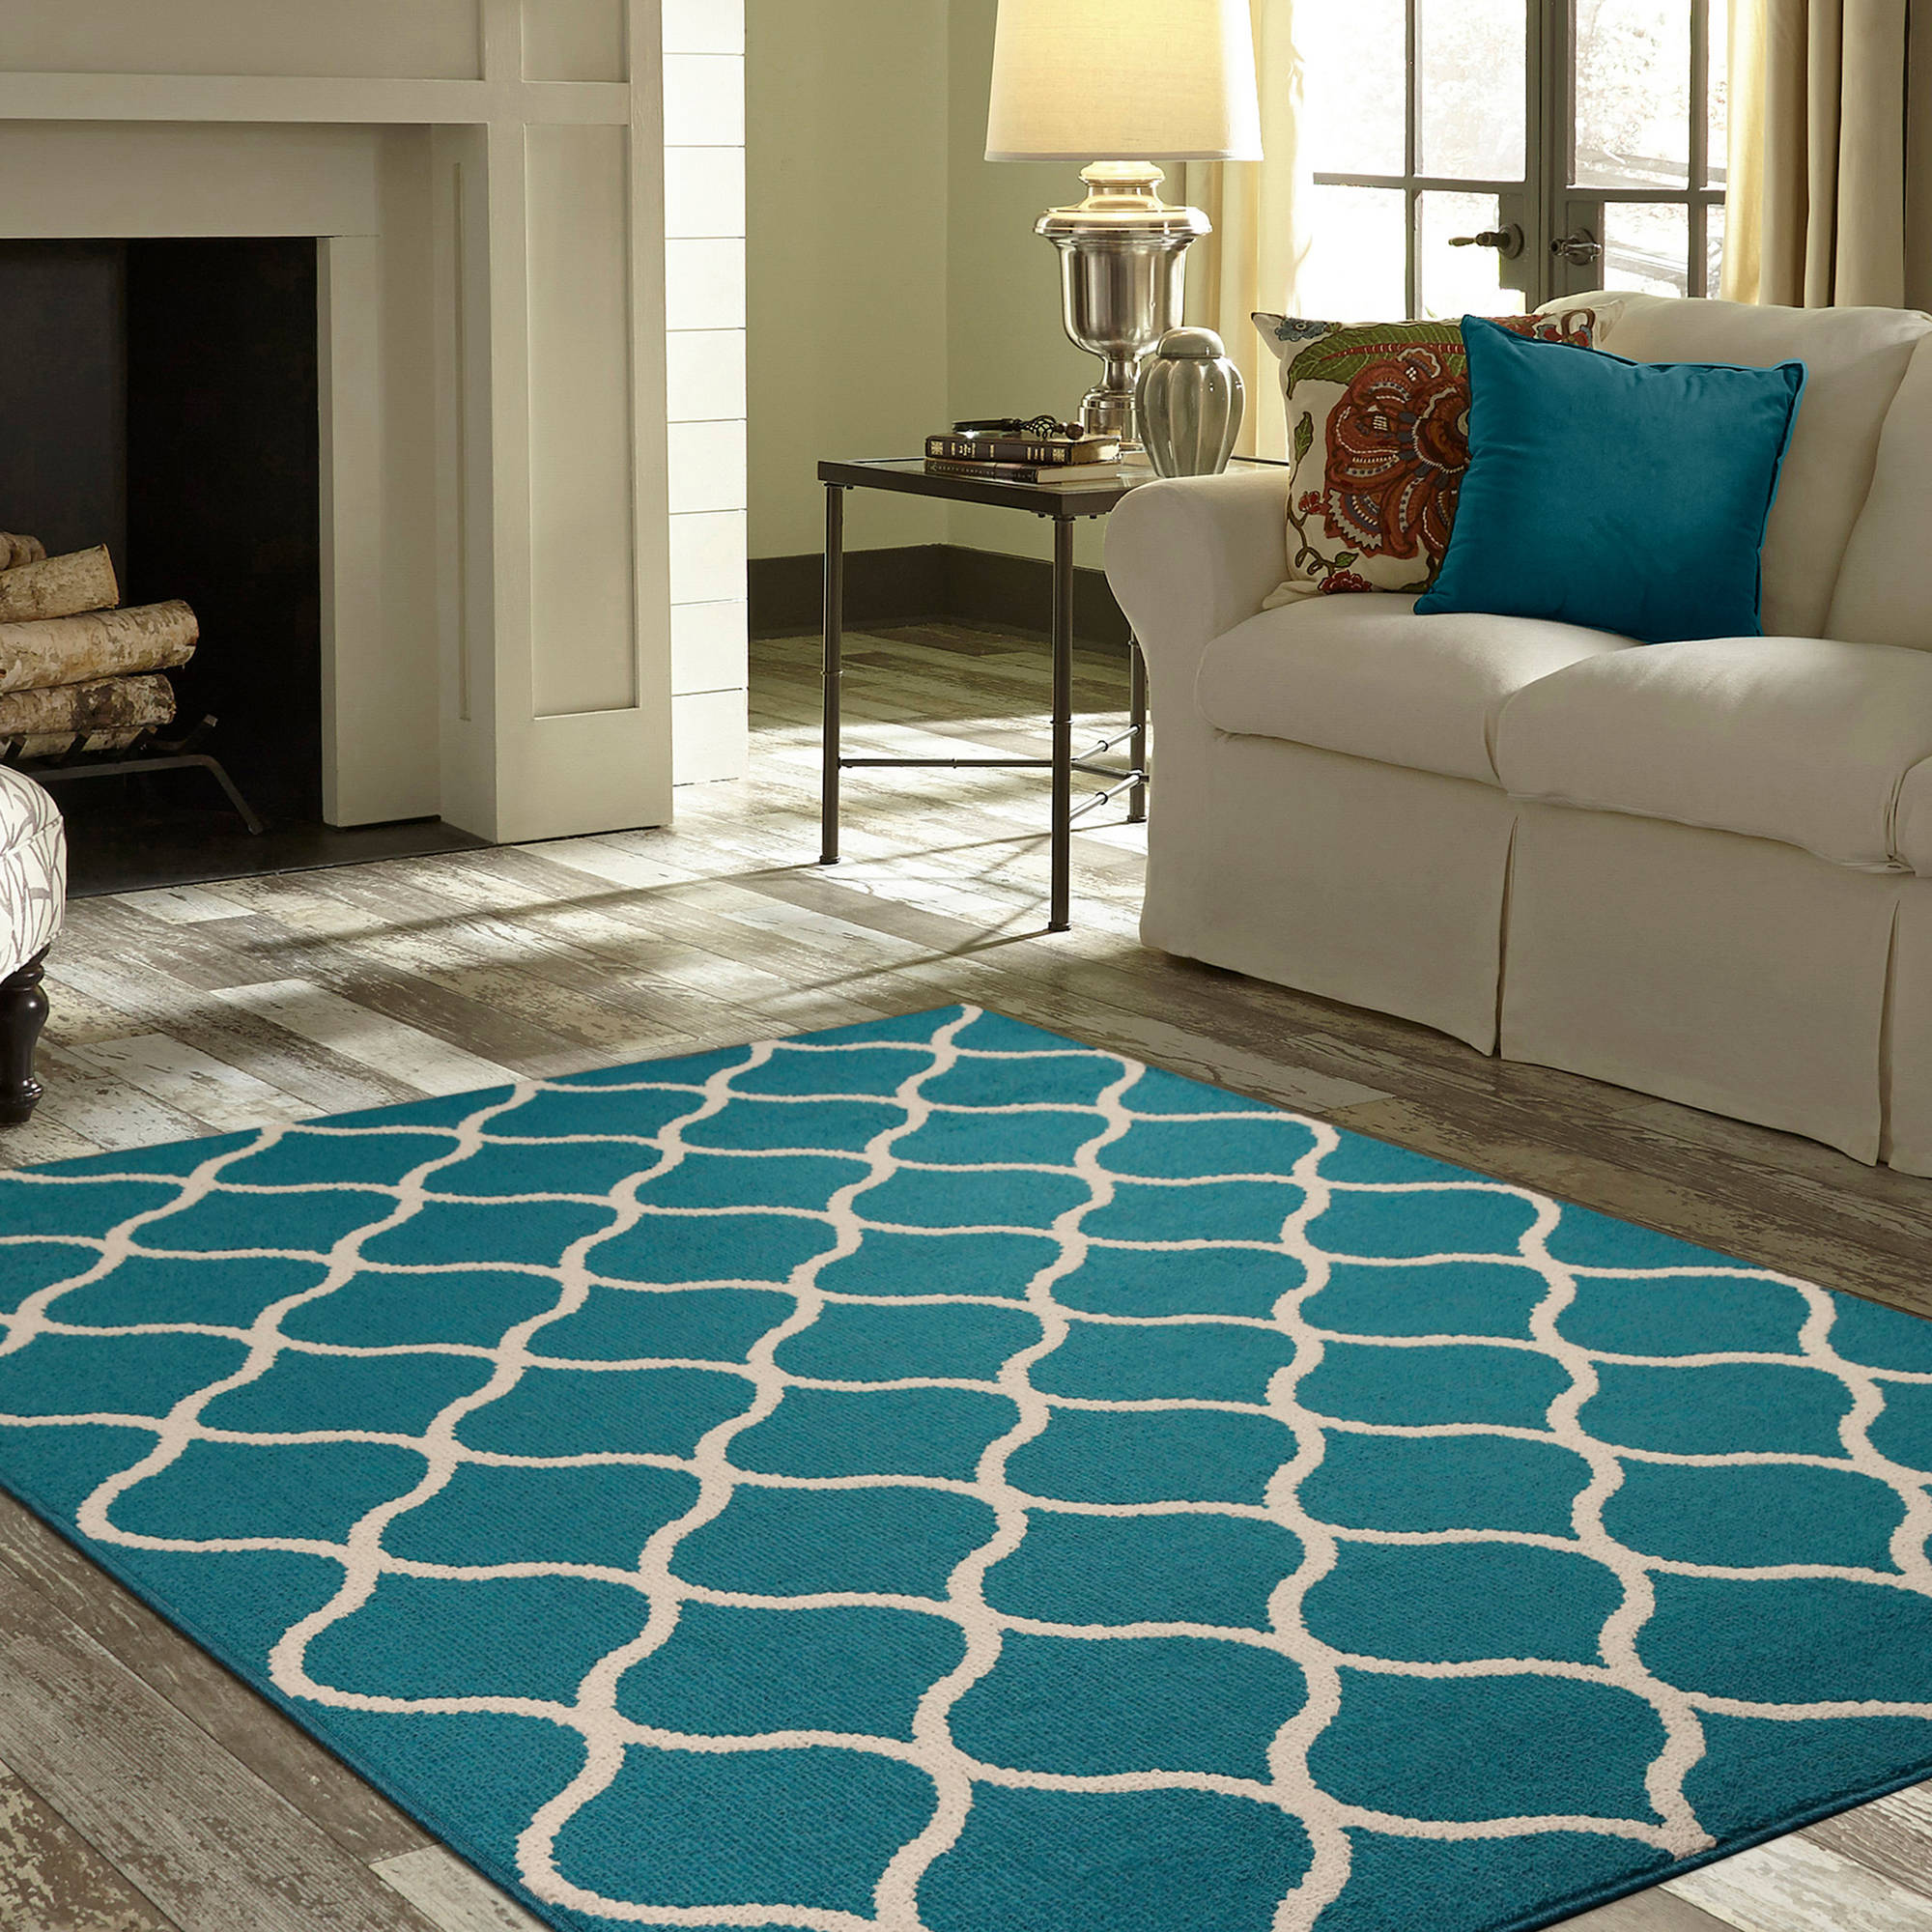 teal rugs mainstays sheridan area rug or runner TOUJMGP